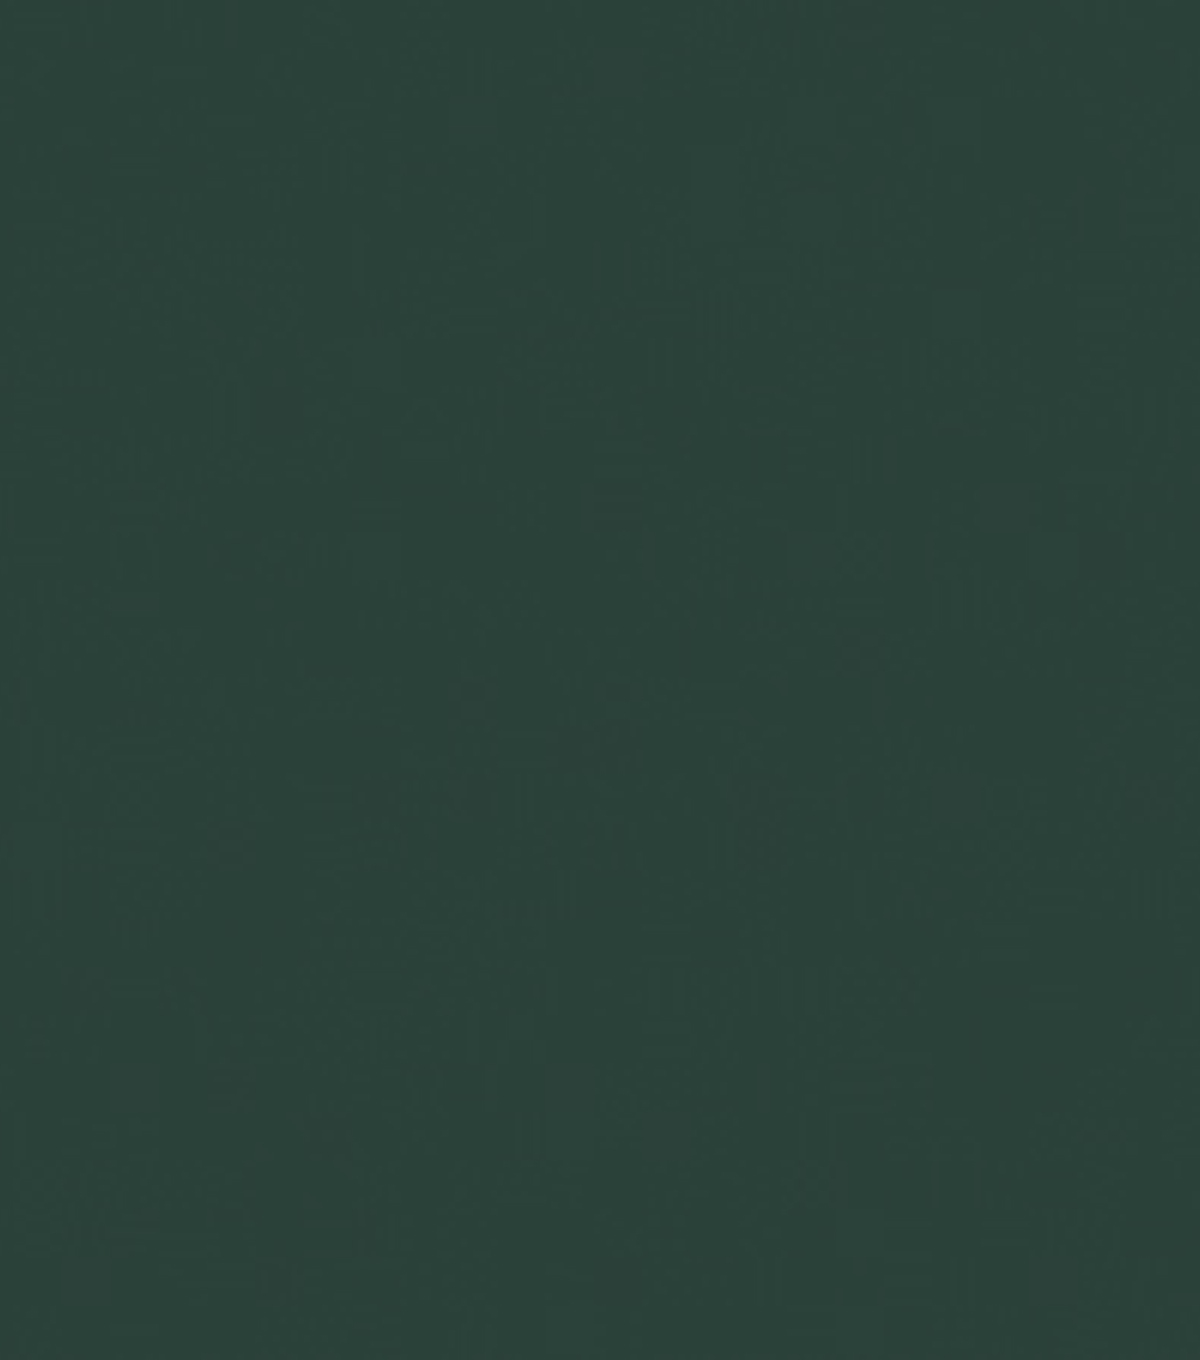 Delta Ceramcoat Acrylic Paint 2 oz, Pine Green